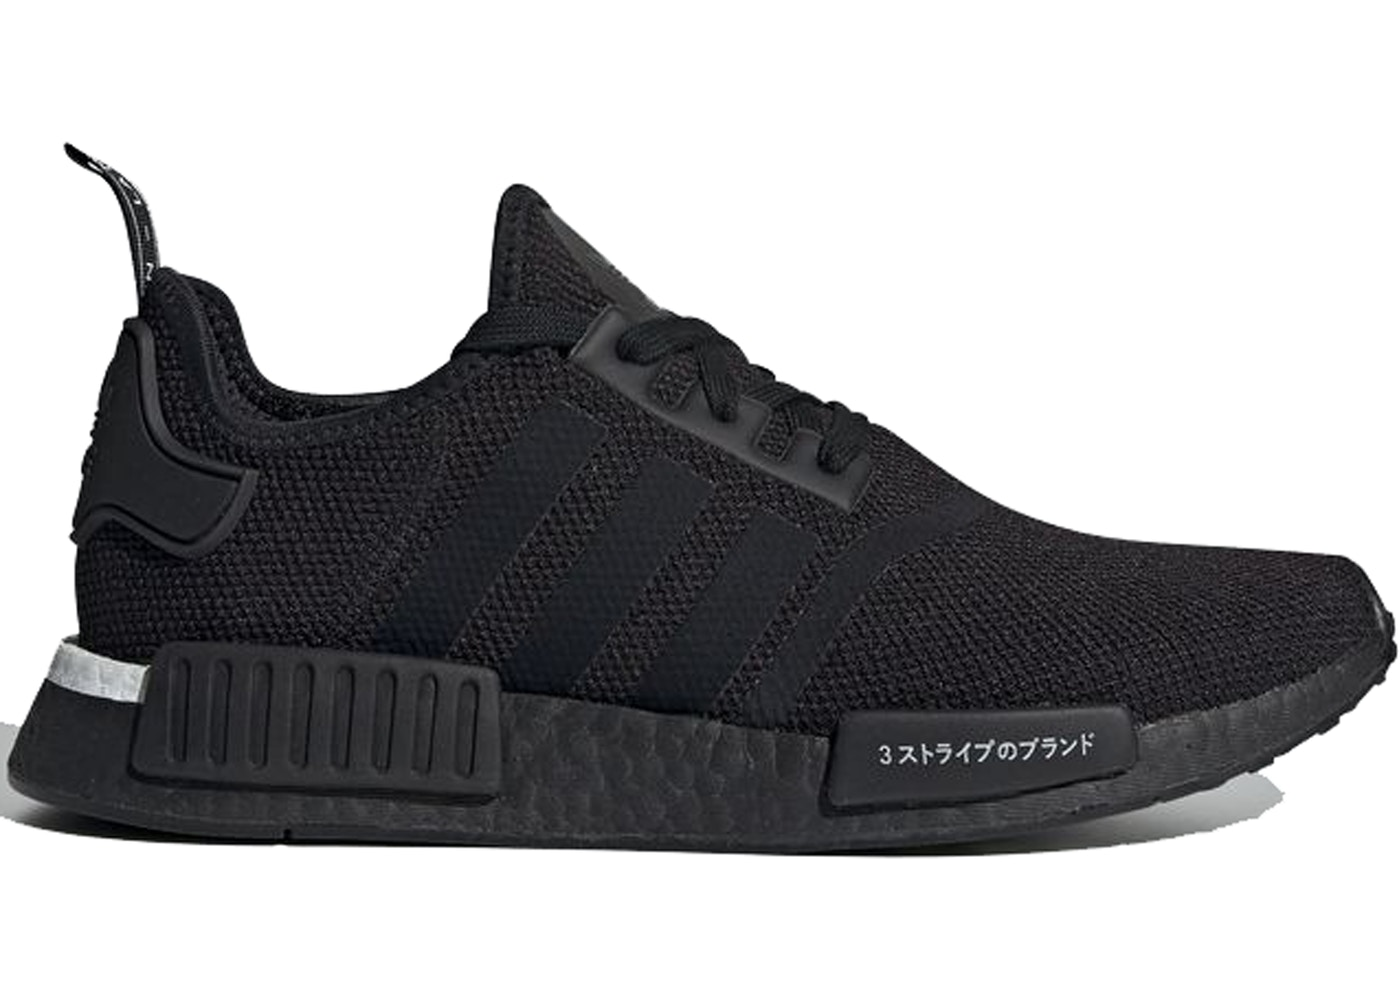 1c57f245a adidas NMD R1 Japan Black (2019) - BD7754